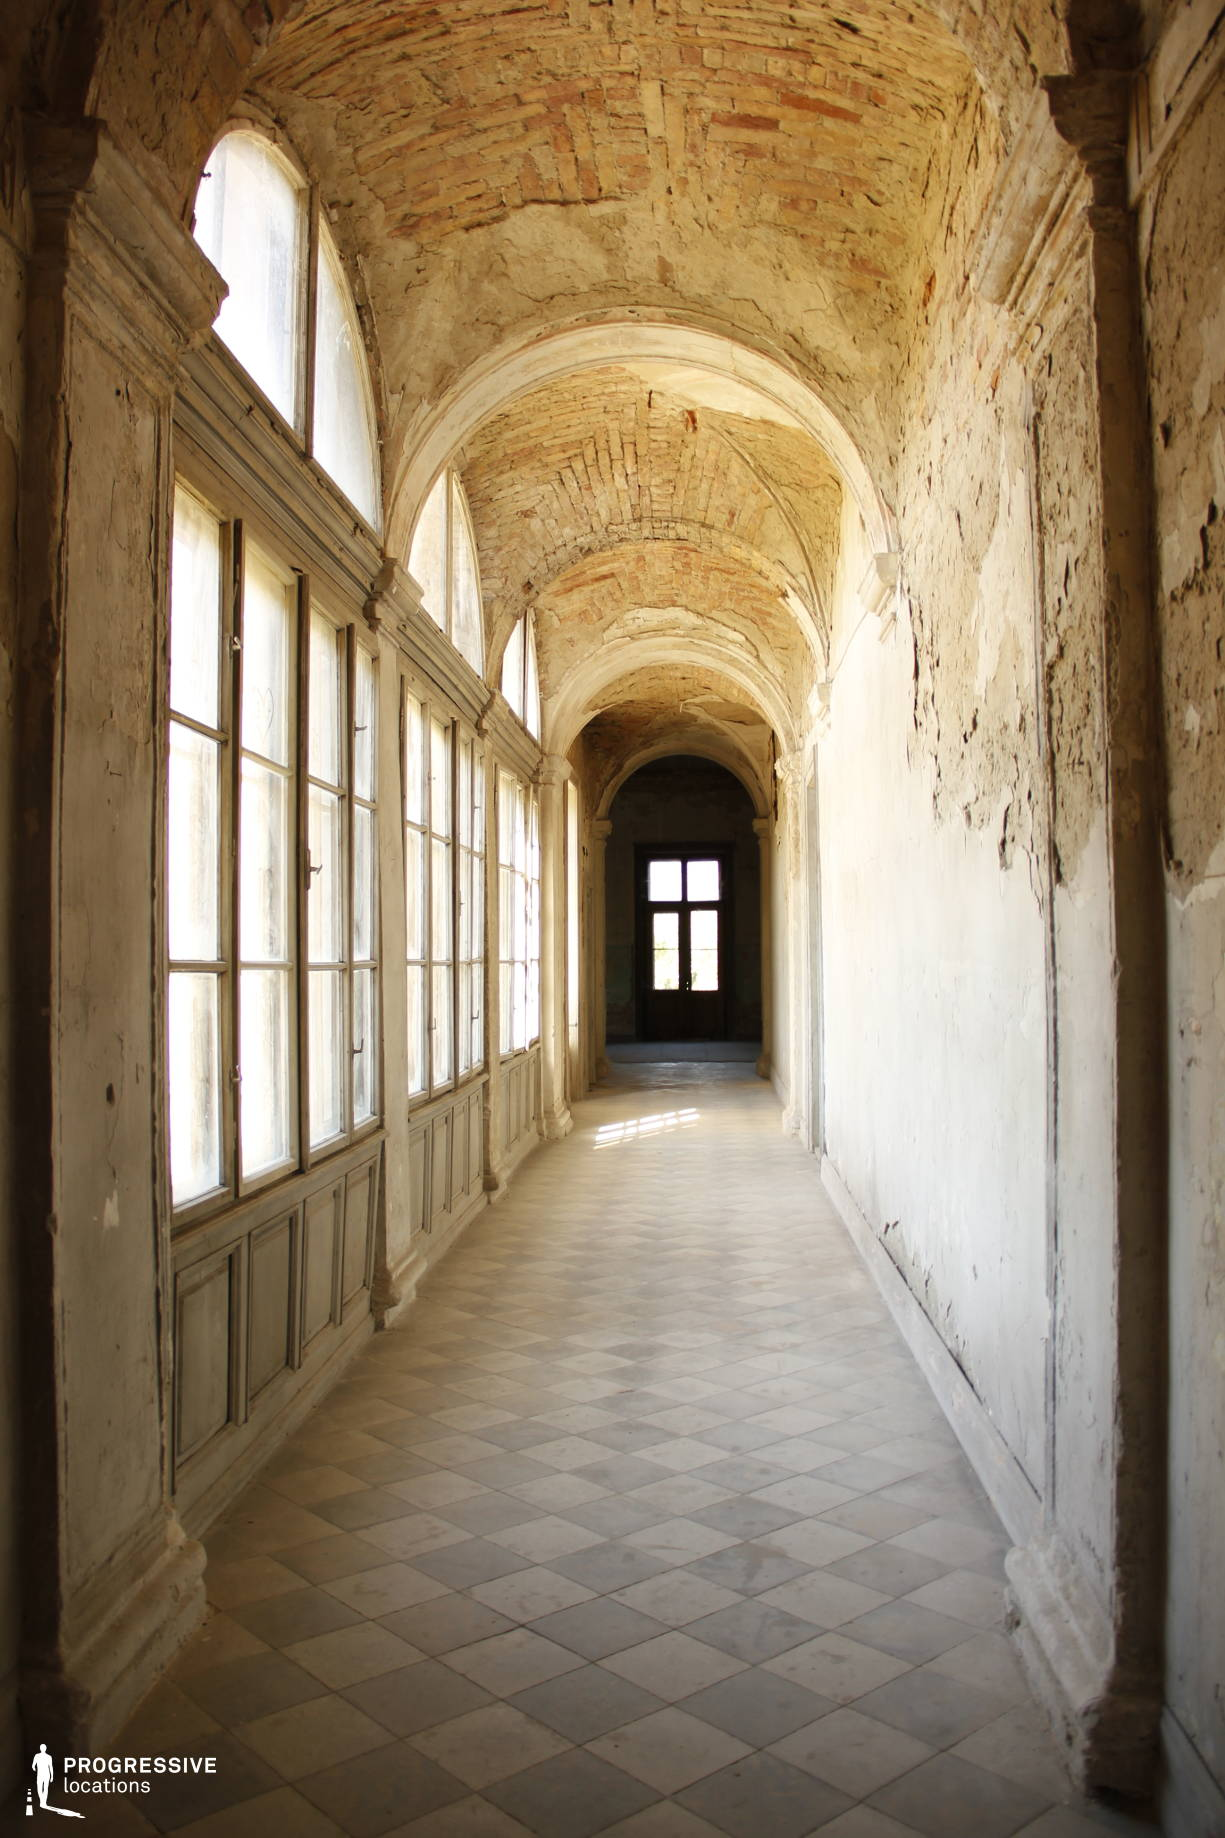 Locations in Hungary: Corridor %26 Arched Windows, Tura castle